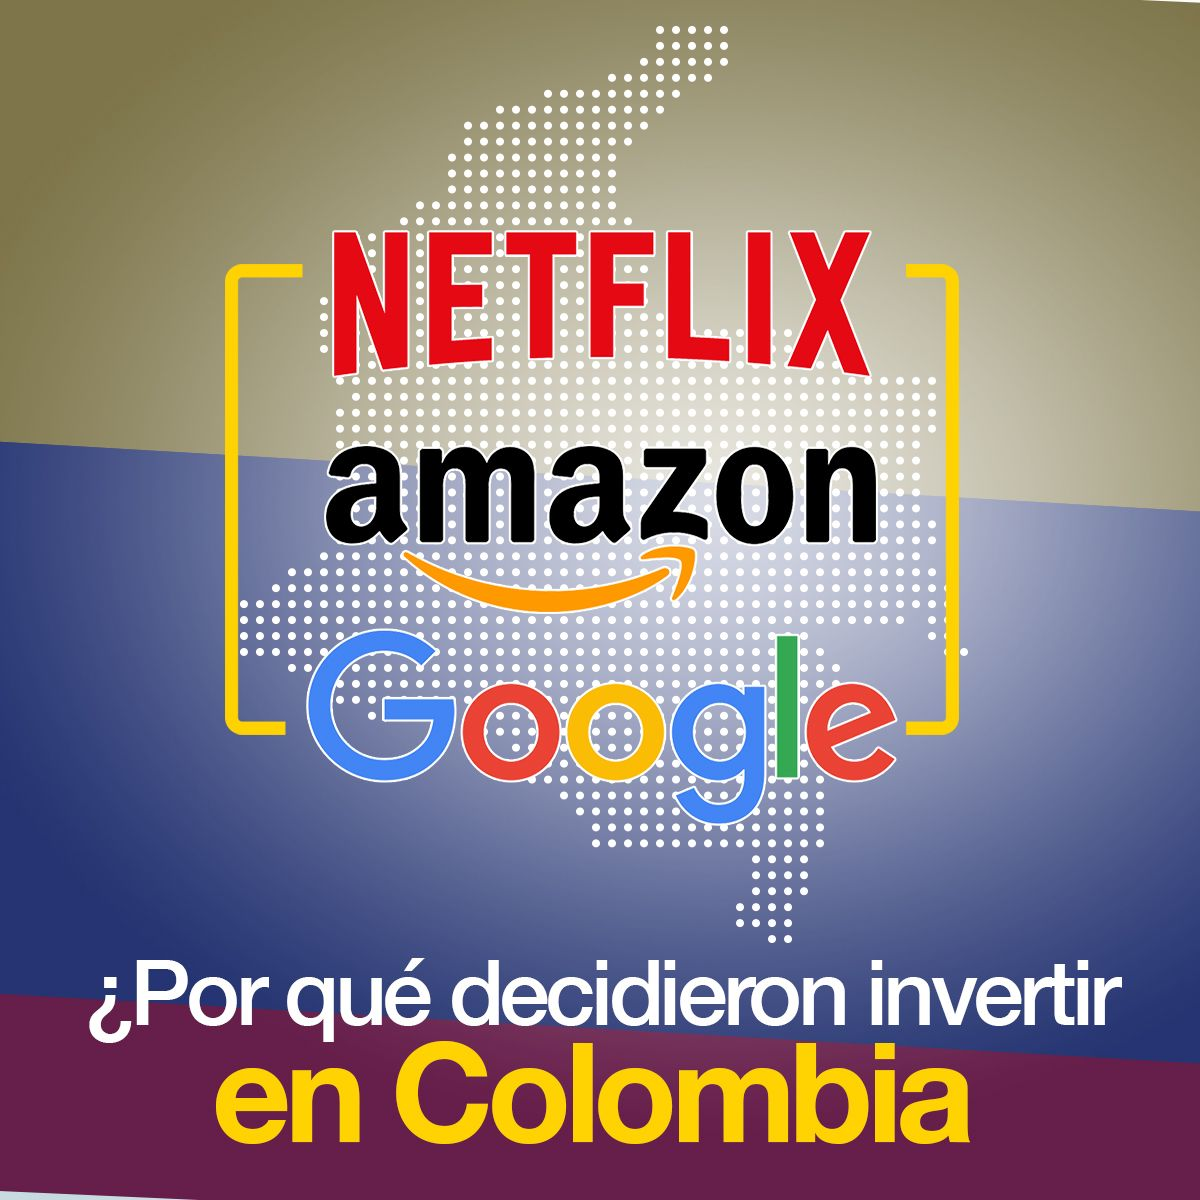 Netflix, Amazon y Google ¿Por qué decidieron invertir en Colombia?